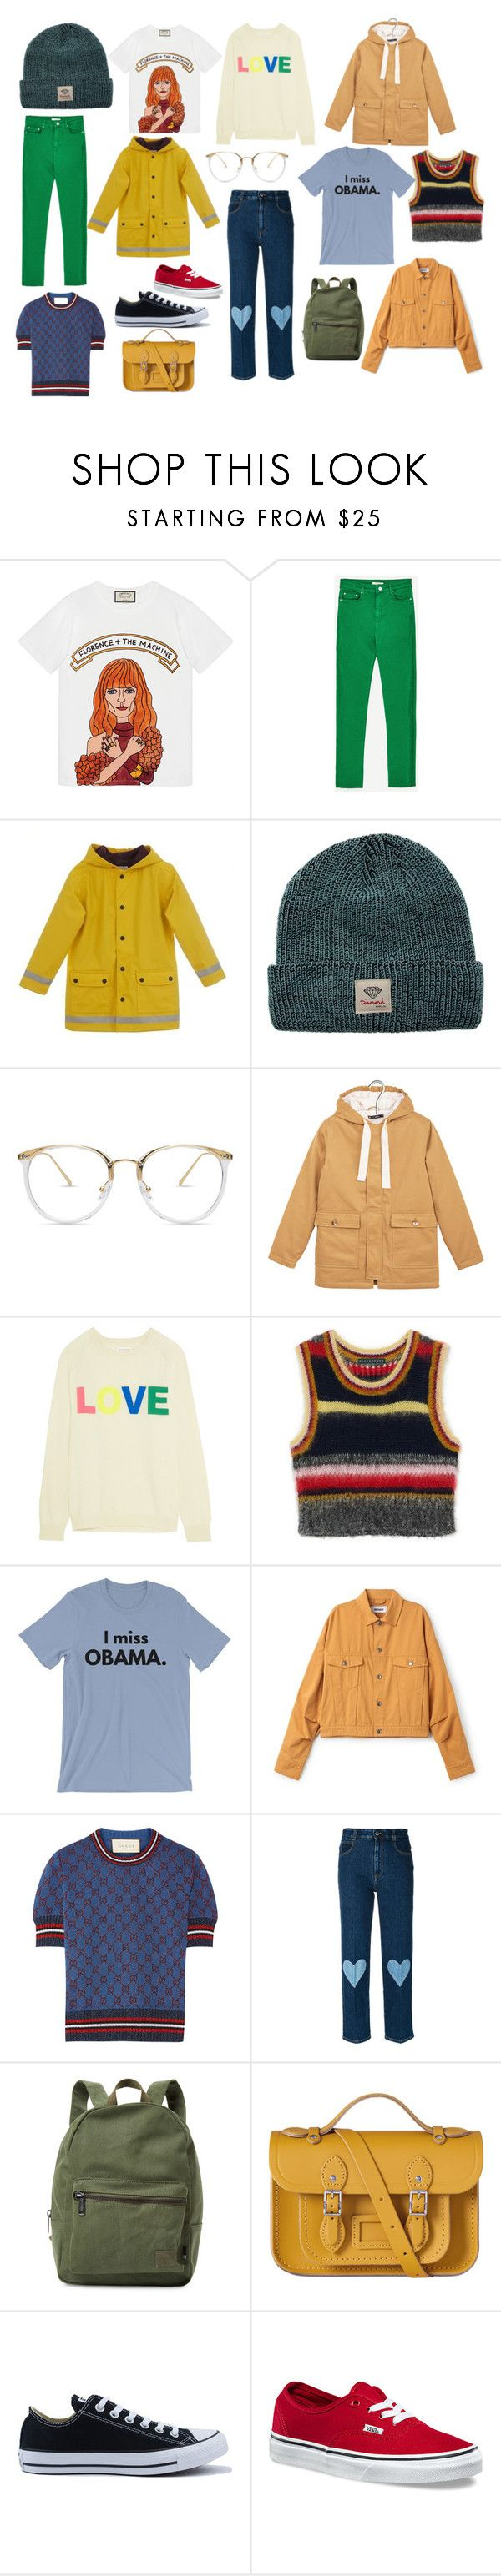 """Yaaasss"" by sofiastyledlife on Polyvore featuring Gucci, Diamond Supply Co., Petit Bateau, Chinti and Parker, STELLA McCARTNEY, Herschel Supply Co., The Cambridge Satchel Company, Converse and Vans"